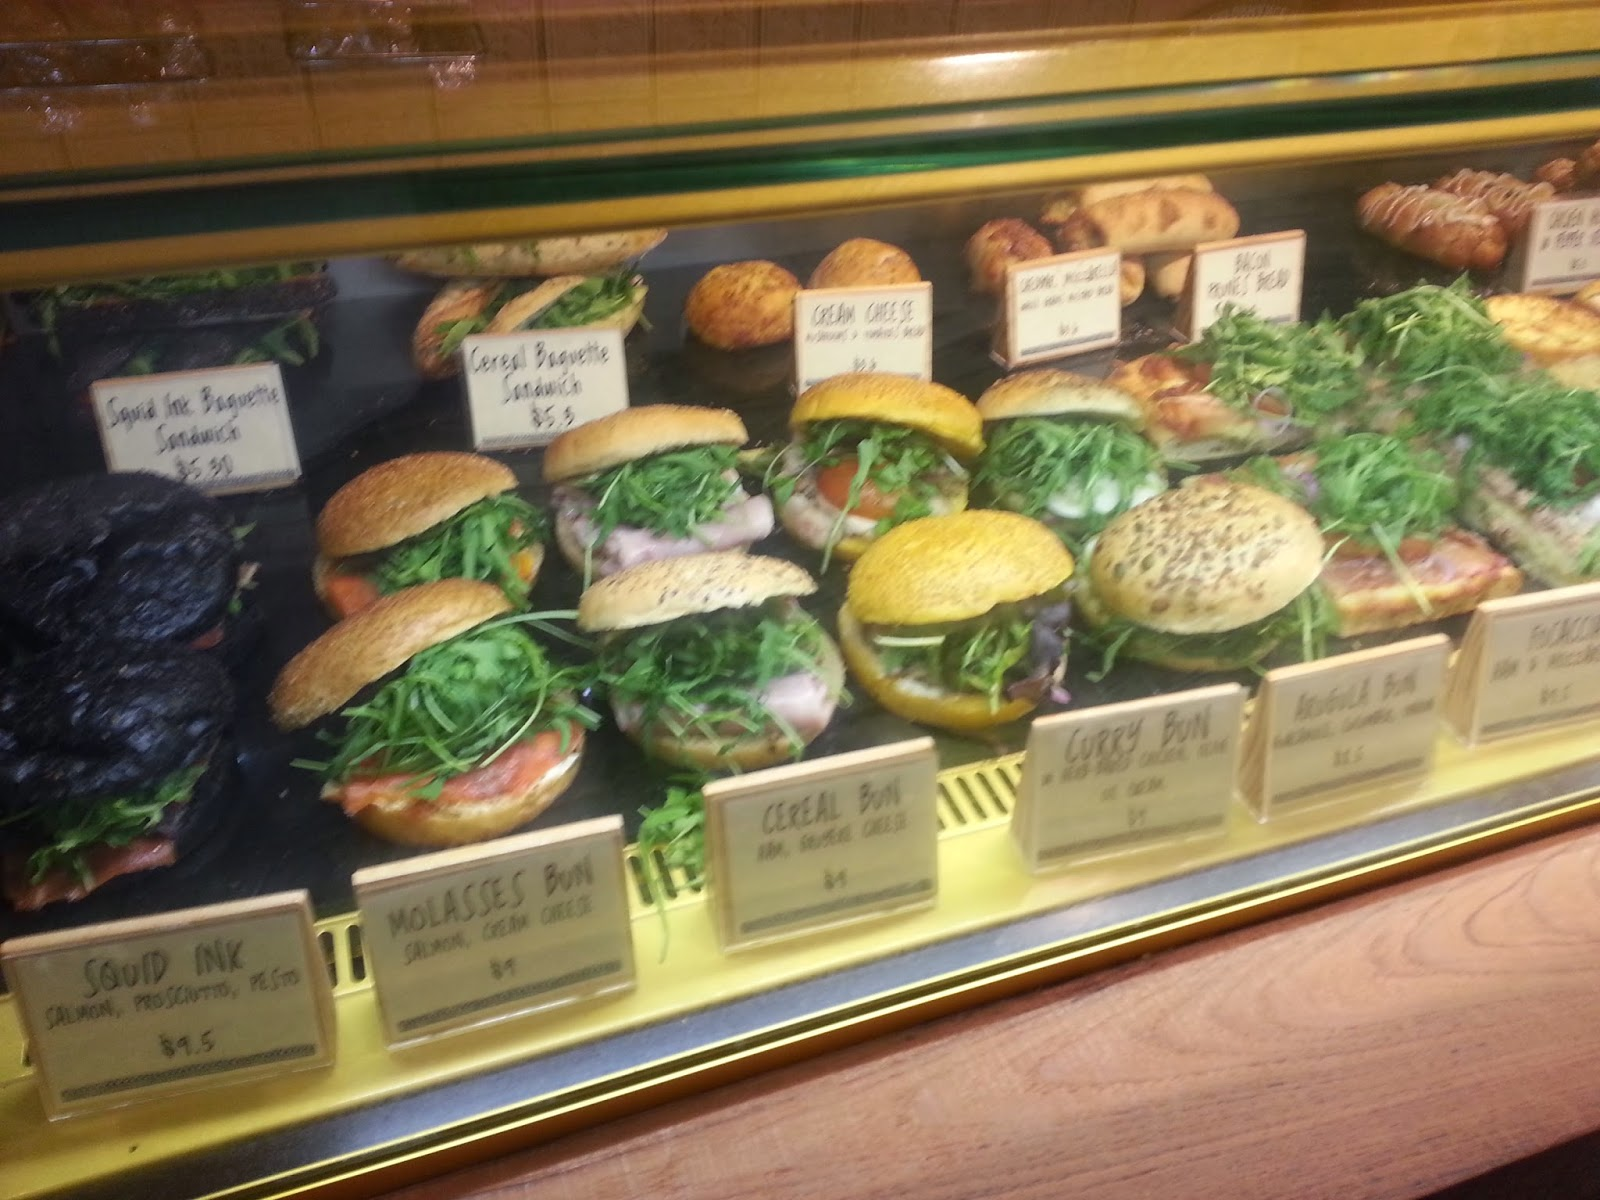 Delightful Look At The Array Of Buns Here At Tiong Bahru Bakery!